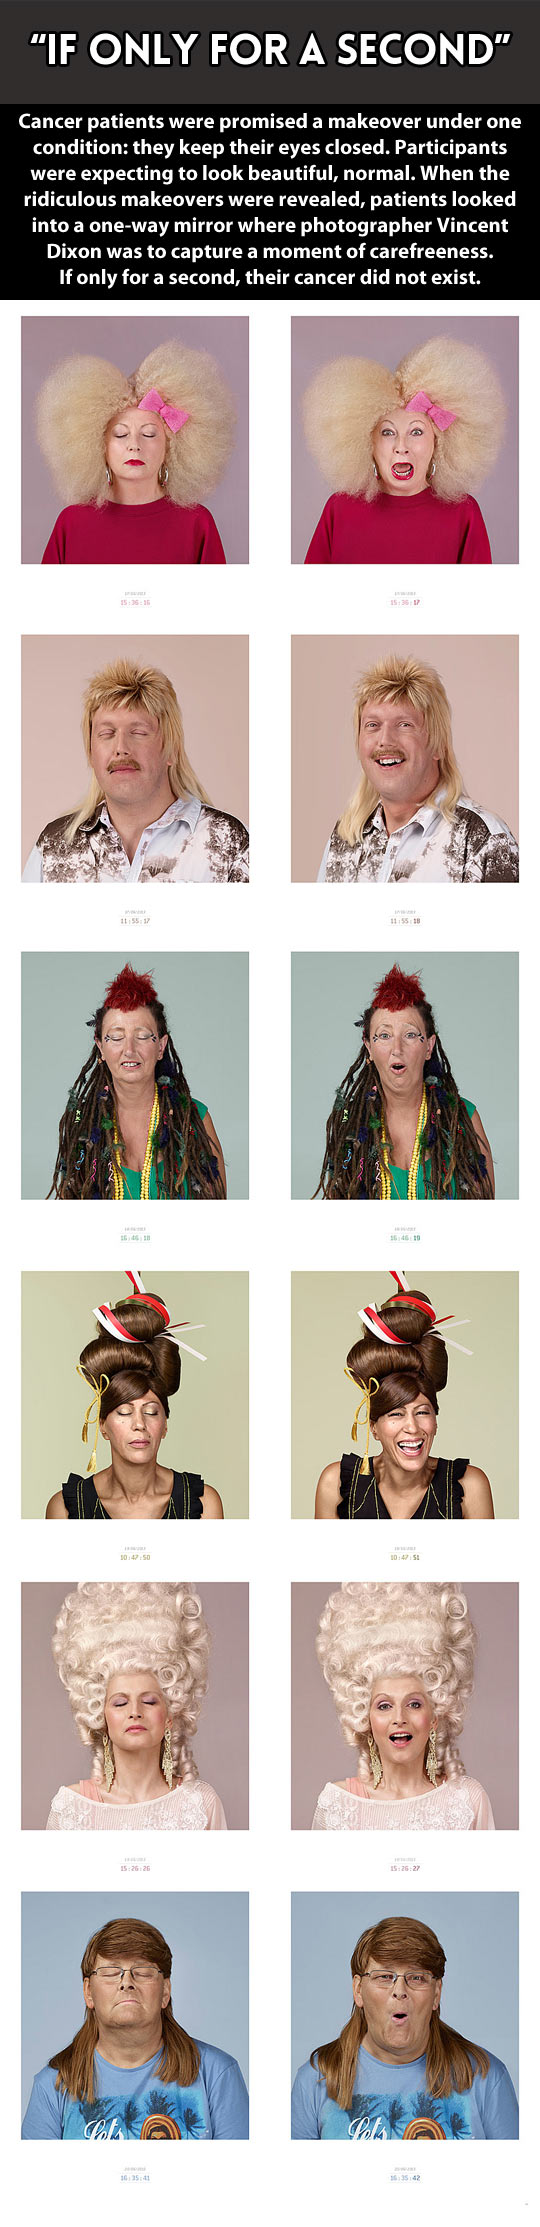 funny-cancer-patients-makeover-ridiculous